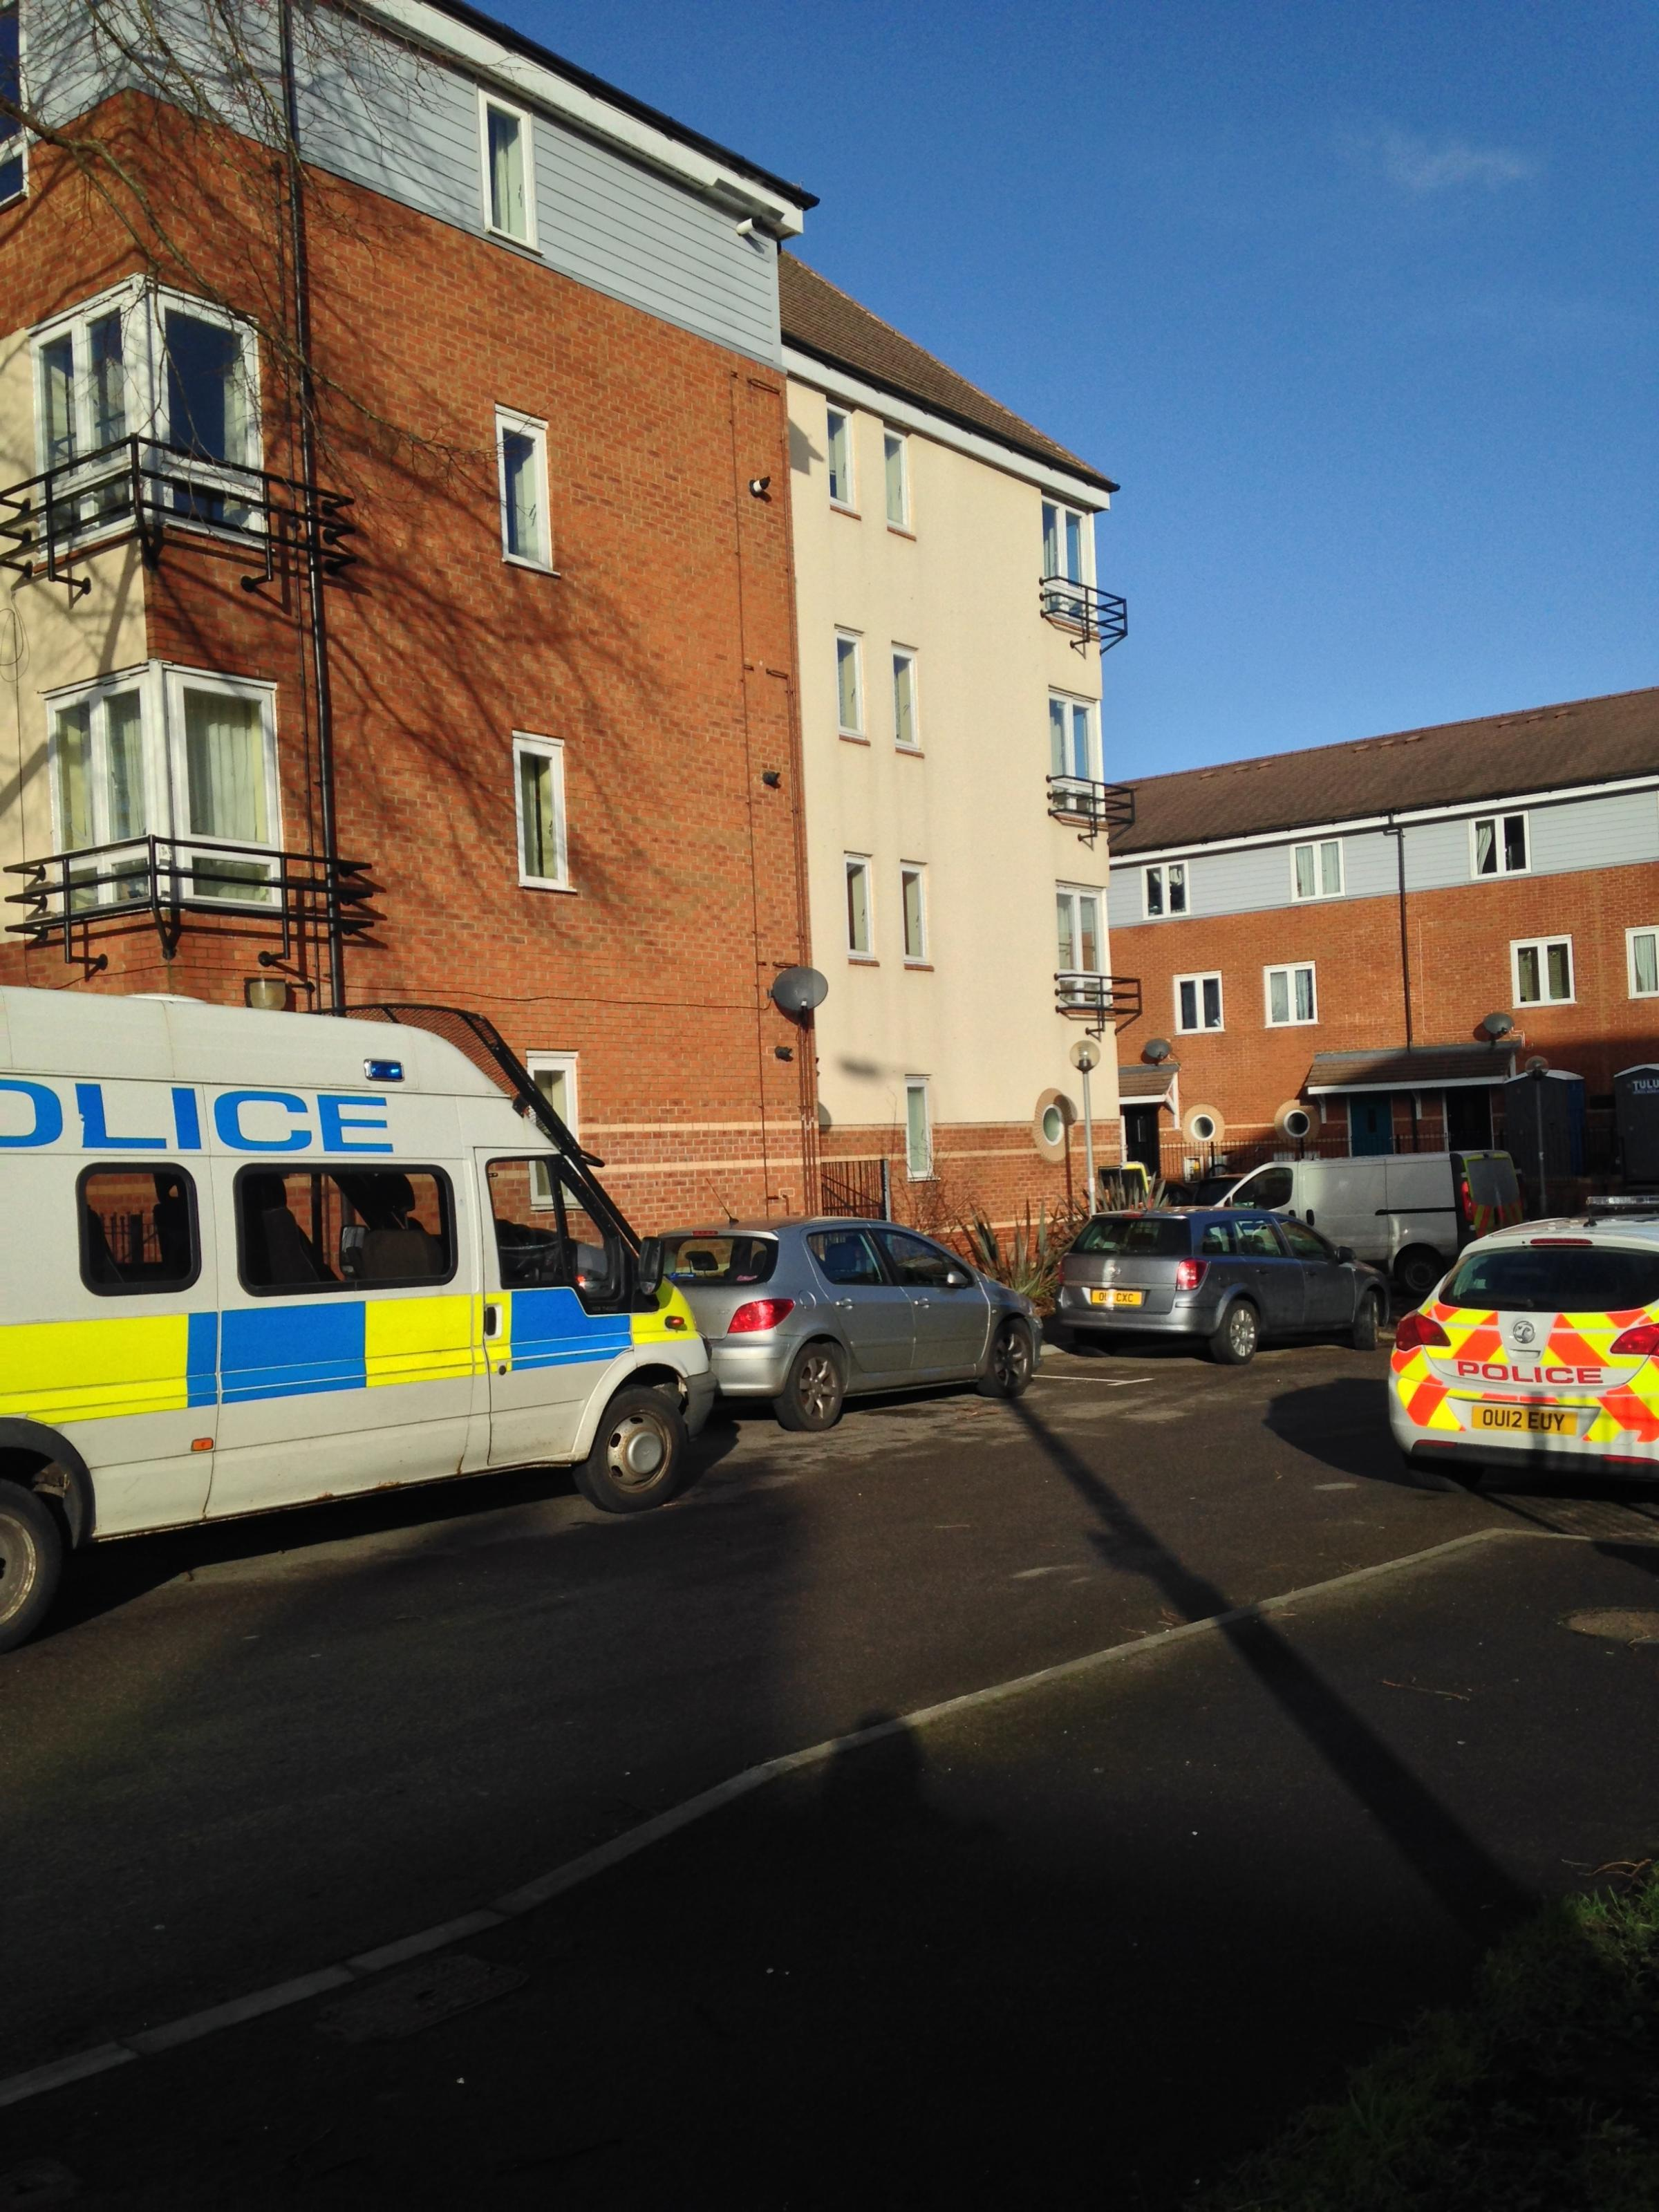 Police swoop on estate off Botley Road